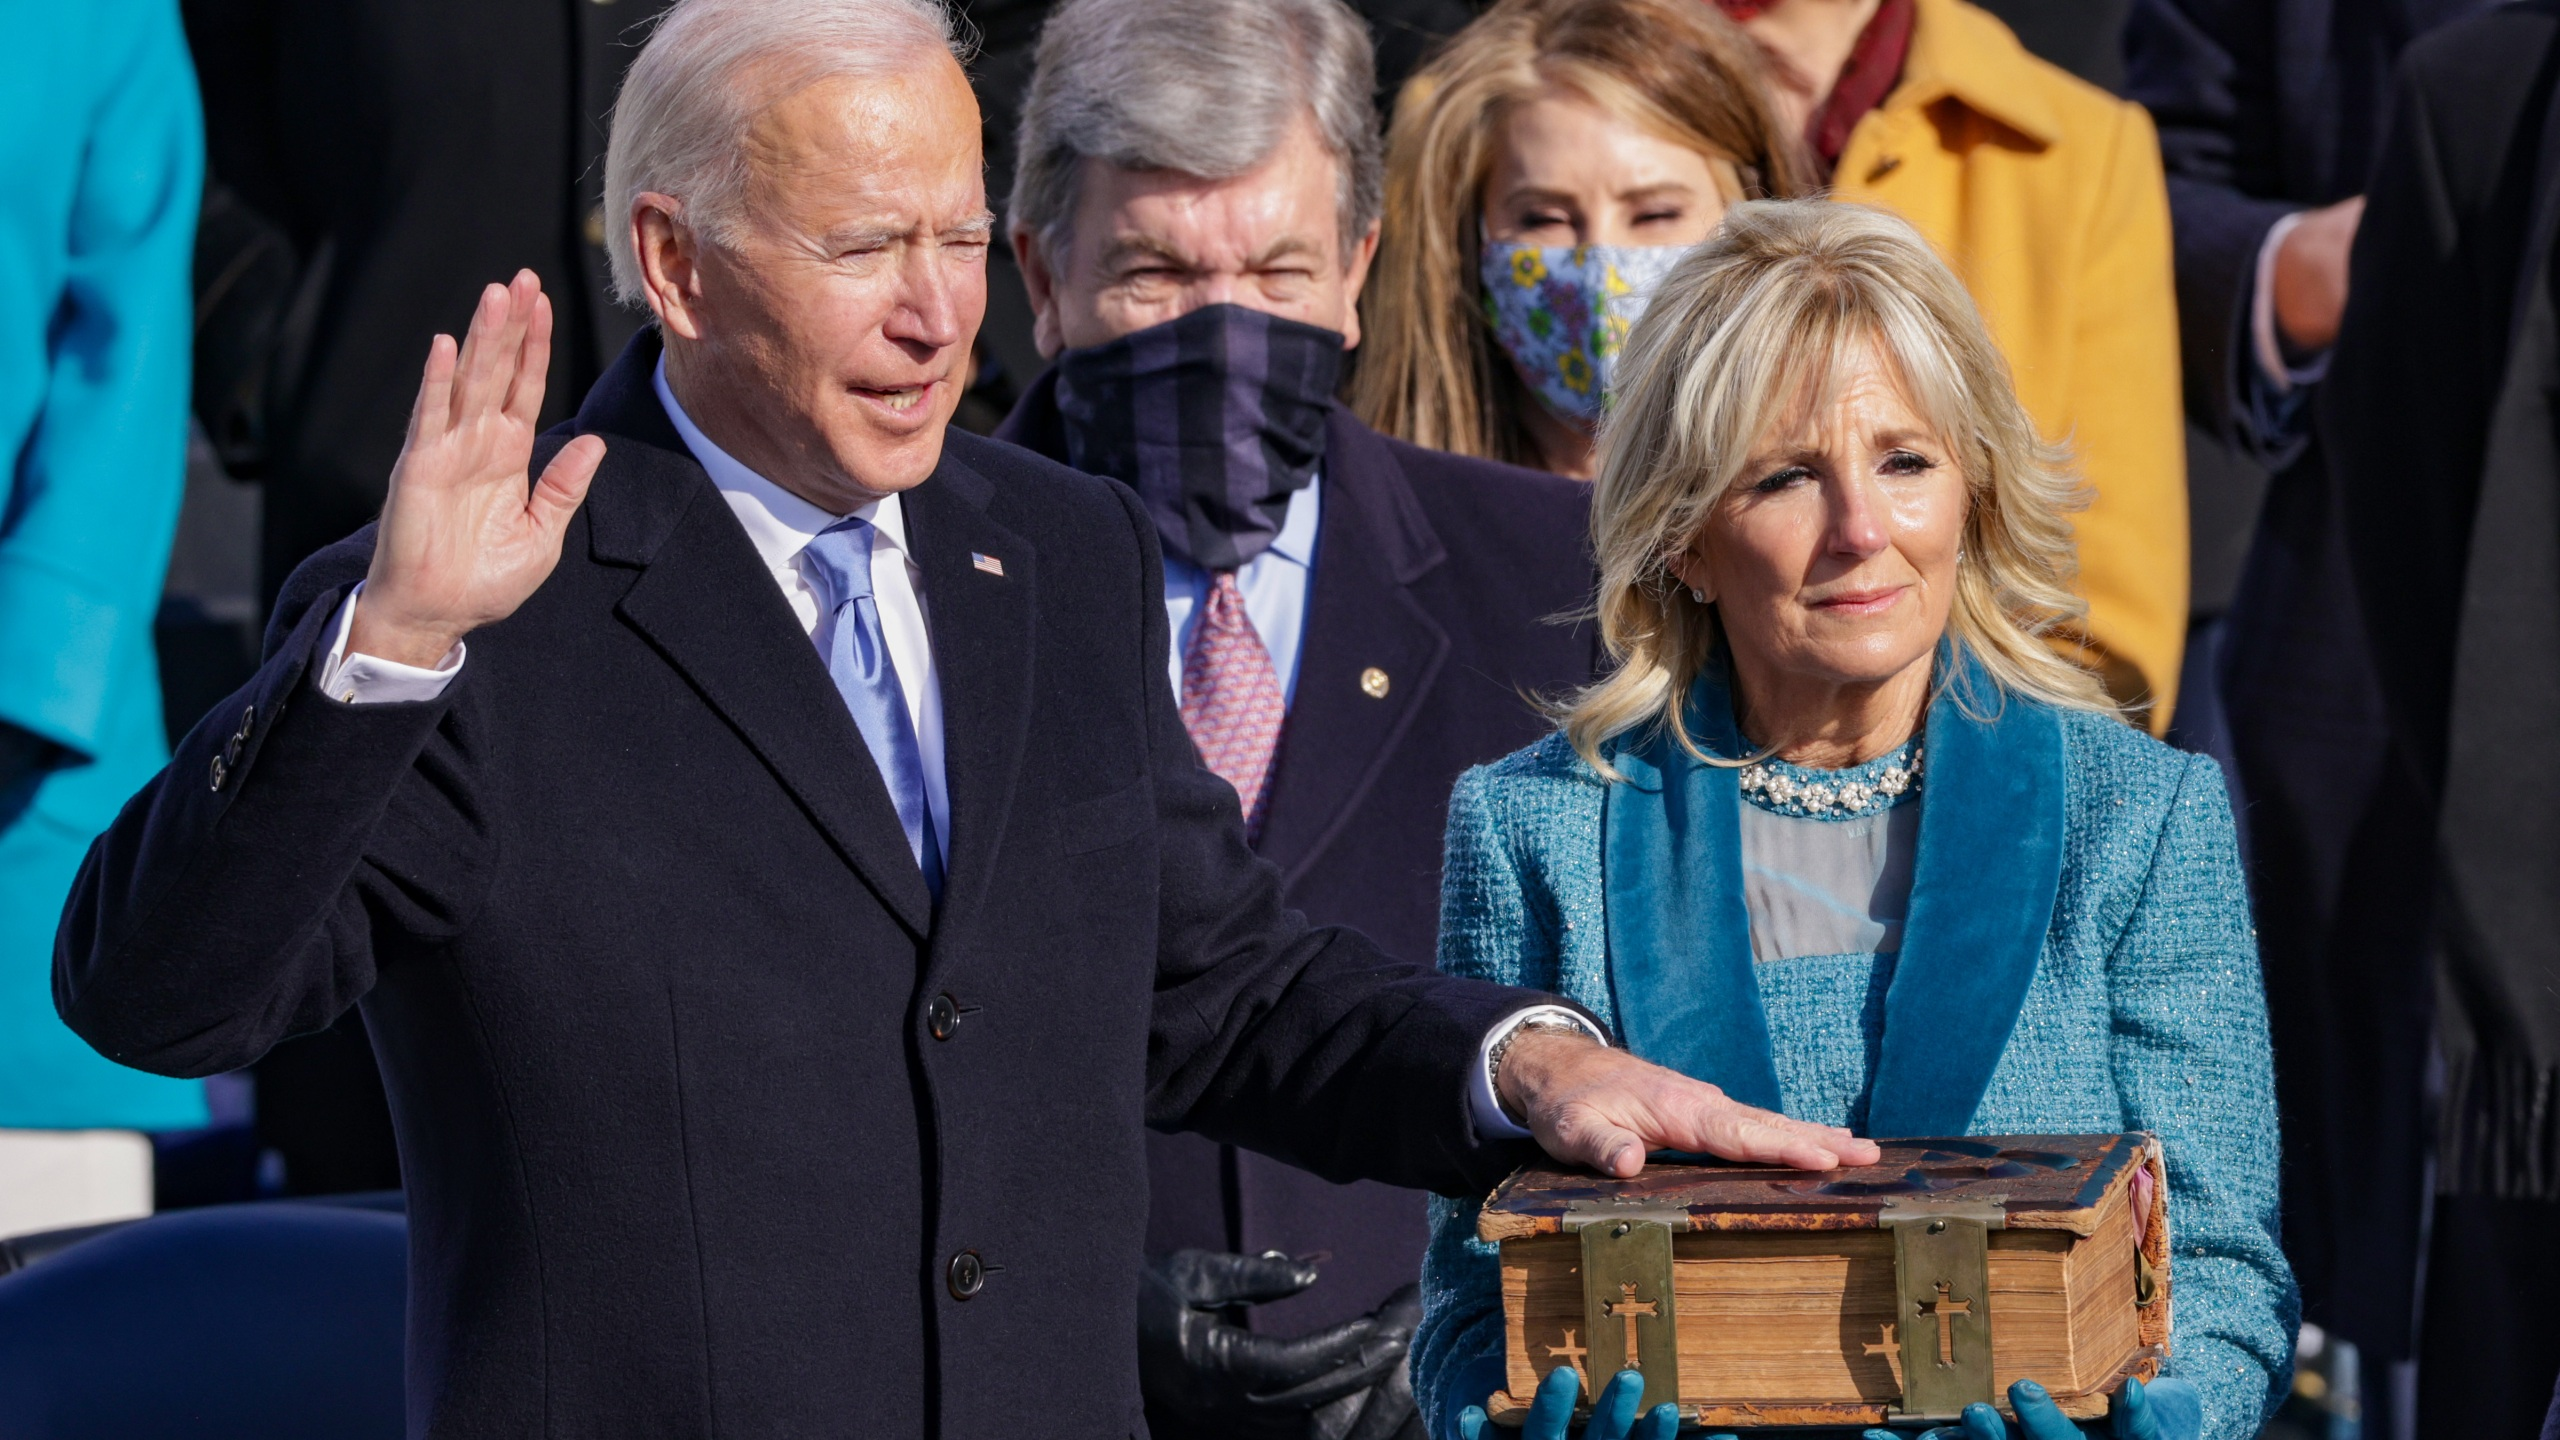 oe Biden is sworn in as U.S. President during his inauguration on the West Front of the U.S. Capitol on January 20, 2021 in Washington, DC. During today's inauguration ceremony Joe Biden becomes the 46th president of the United States. (Photo by Alex Wong/Getty Images)